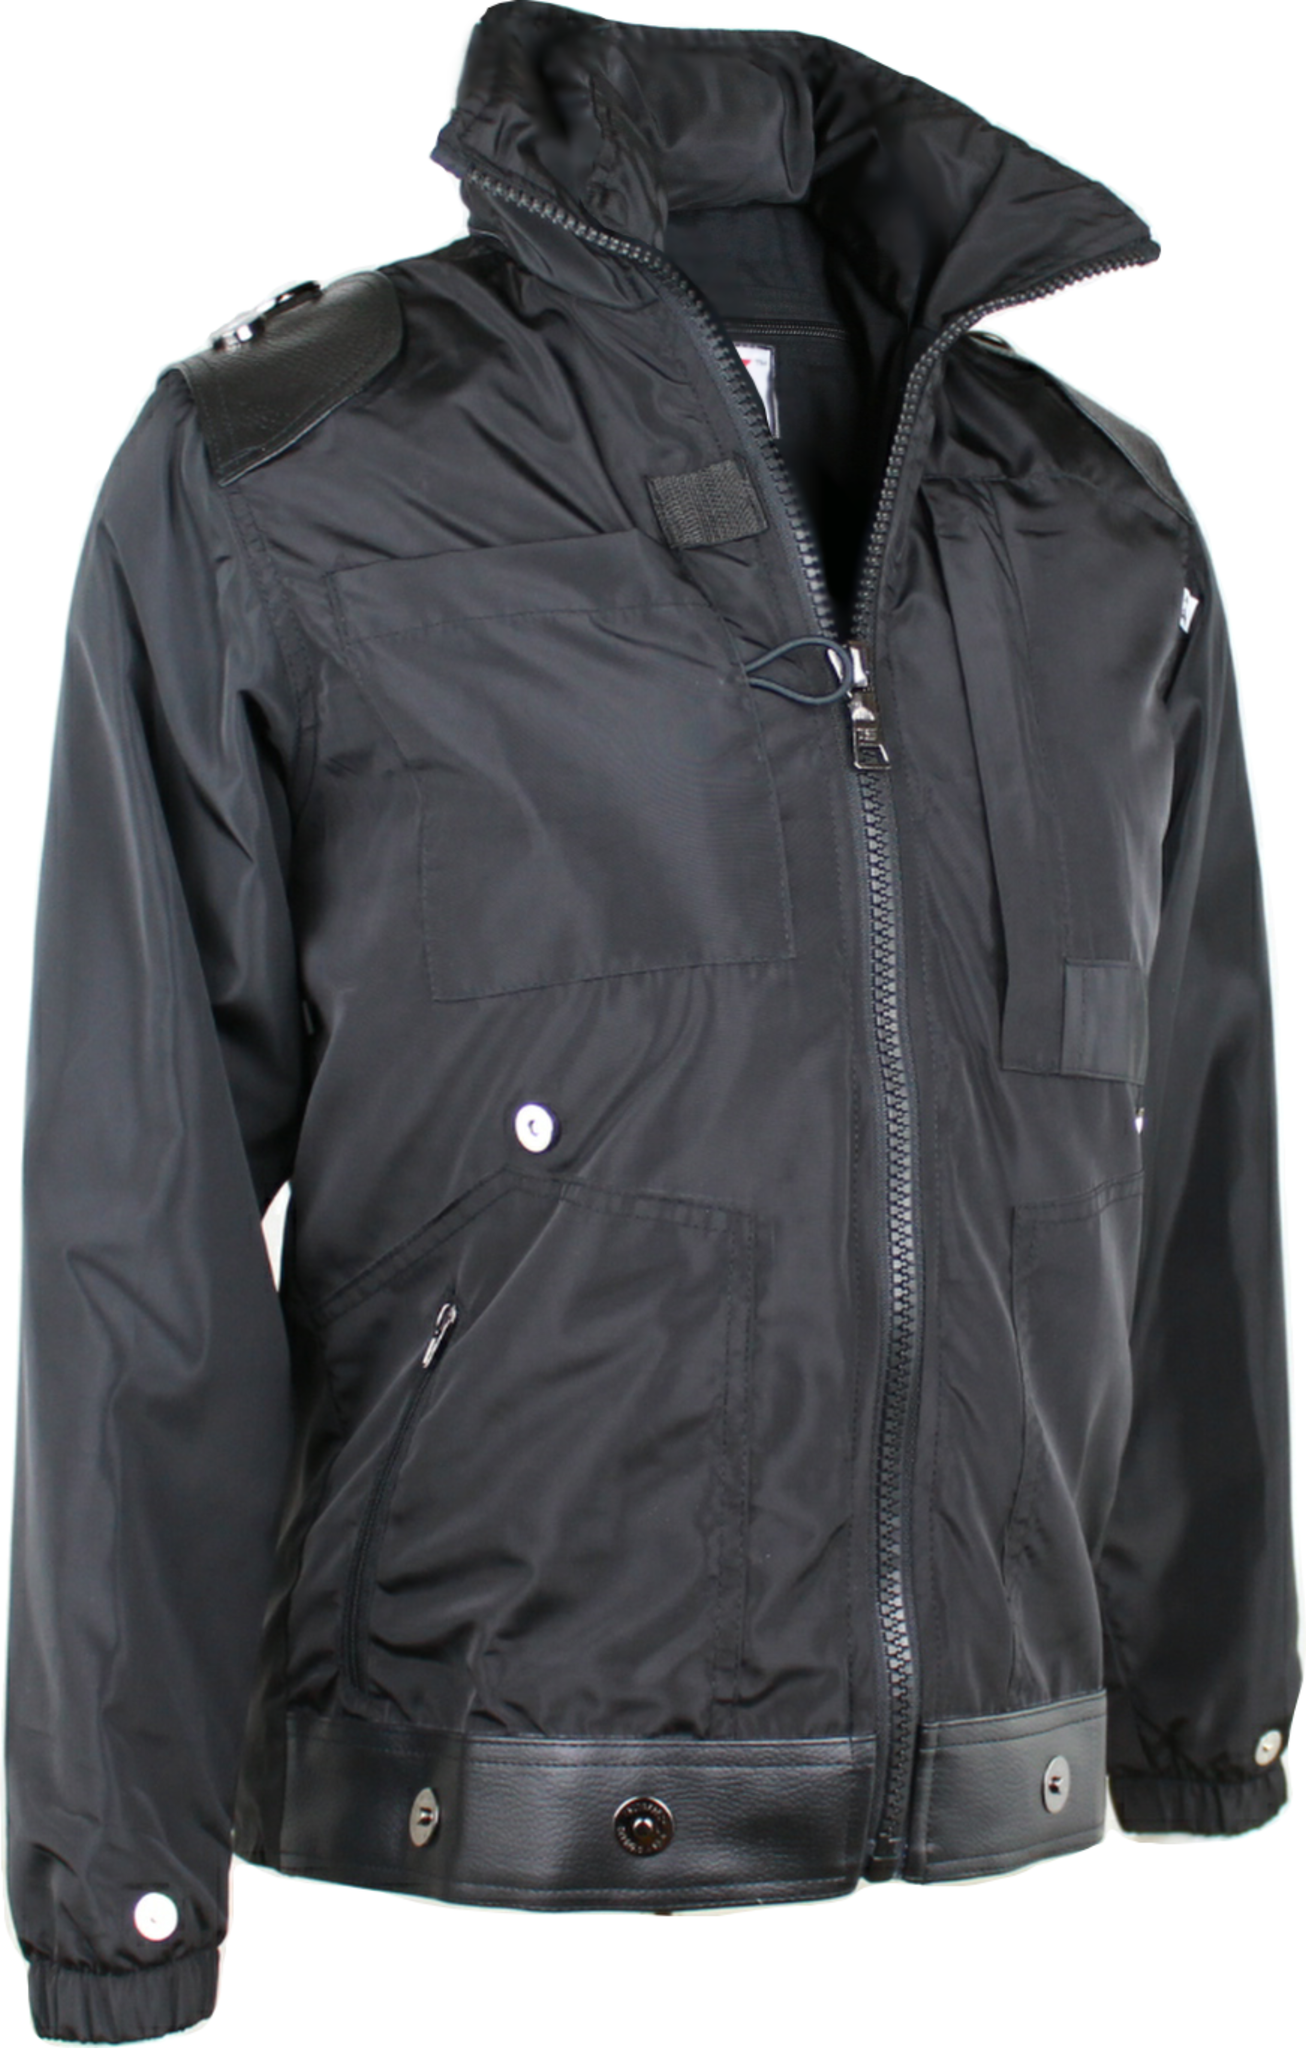 A Travel-Jacket with Concealed Pockets and Hood - for Women - Windbreaker